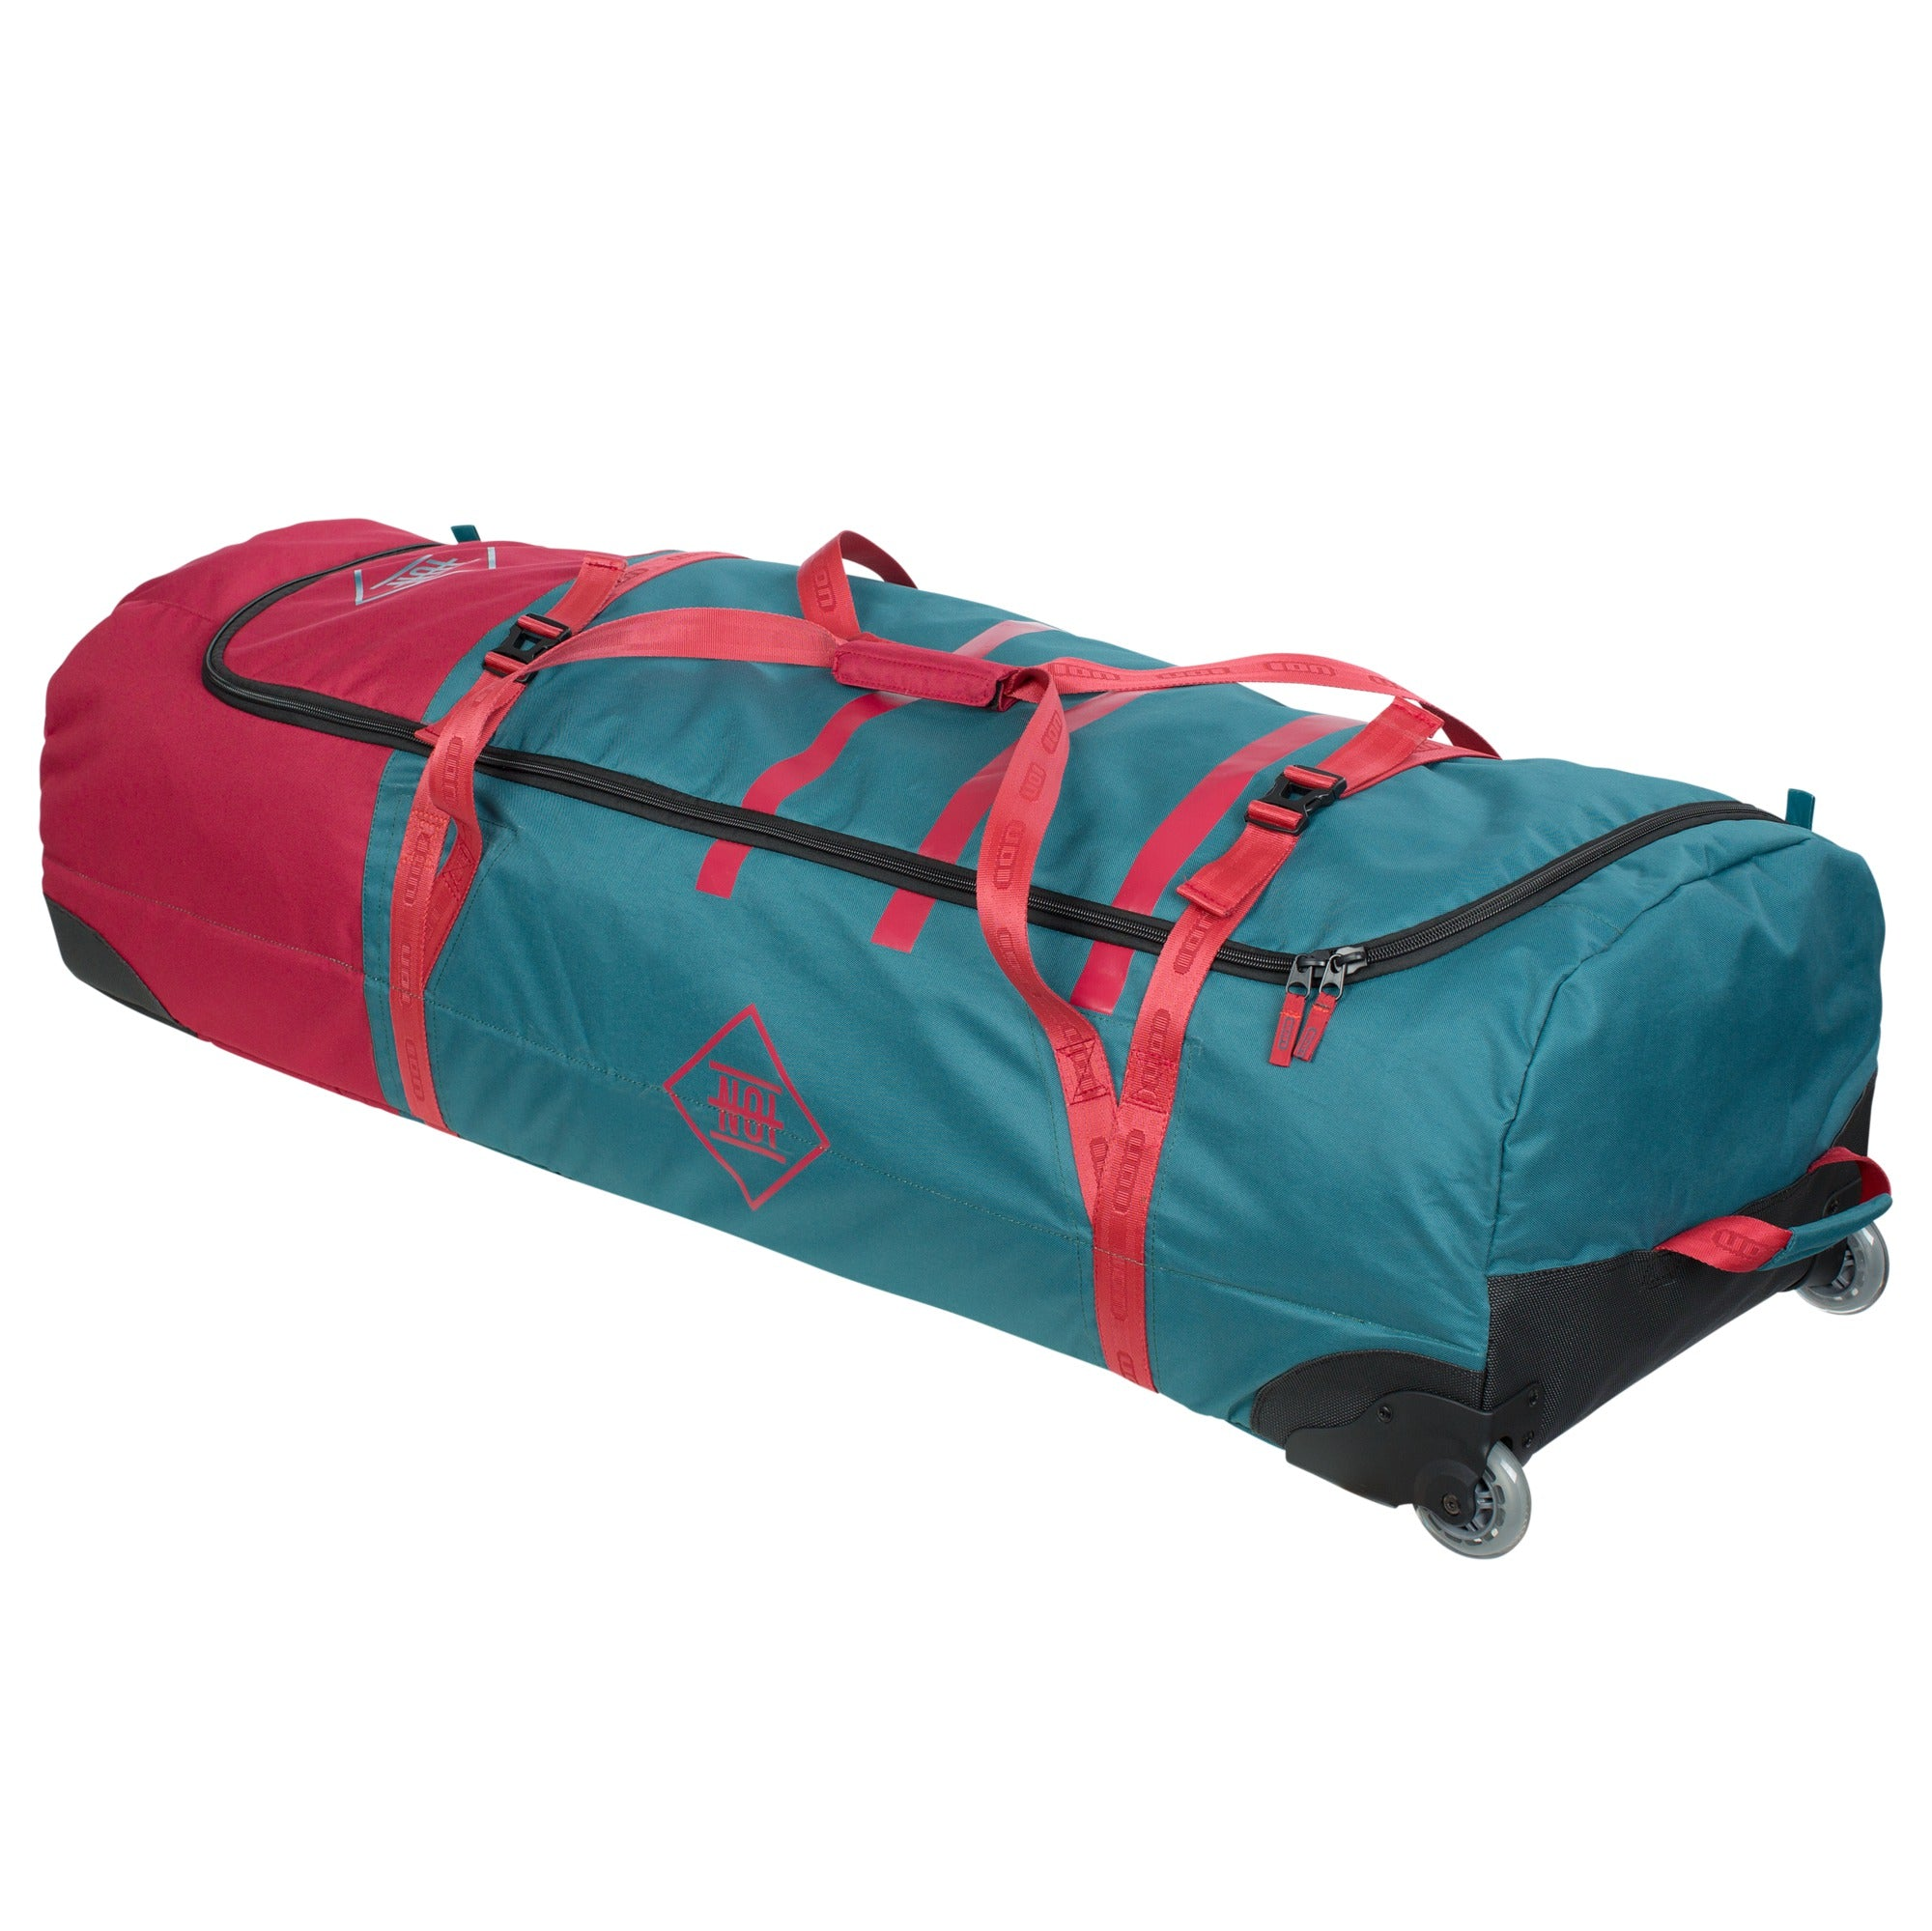 GEARBAG CORE 165 PETROL/RED